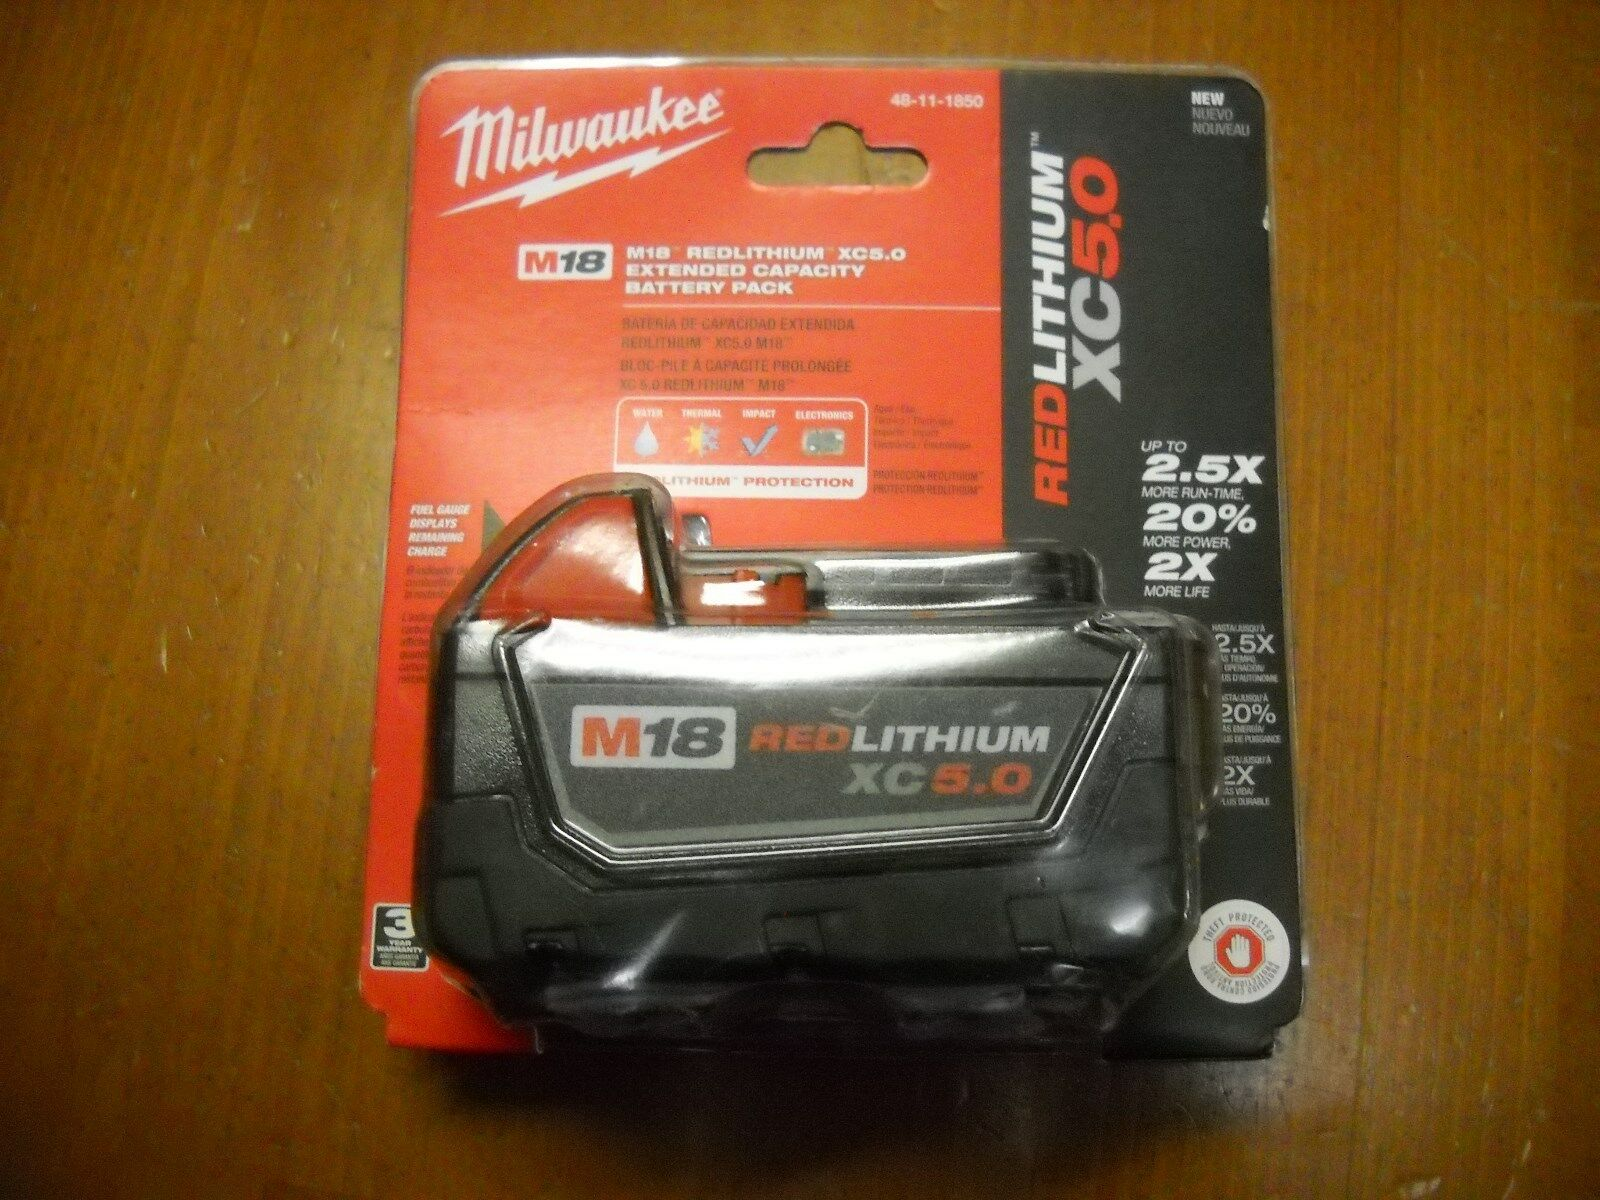 Milwaukee 48-11-1850 18V 5.0 AH Battery M18 18 Volt XC 5.0 Red Lithium NEW I 1